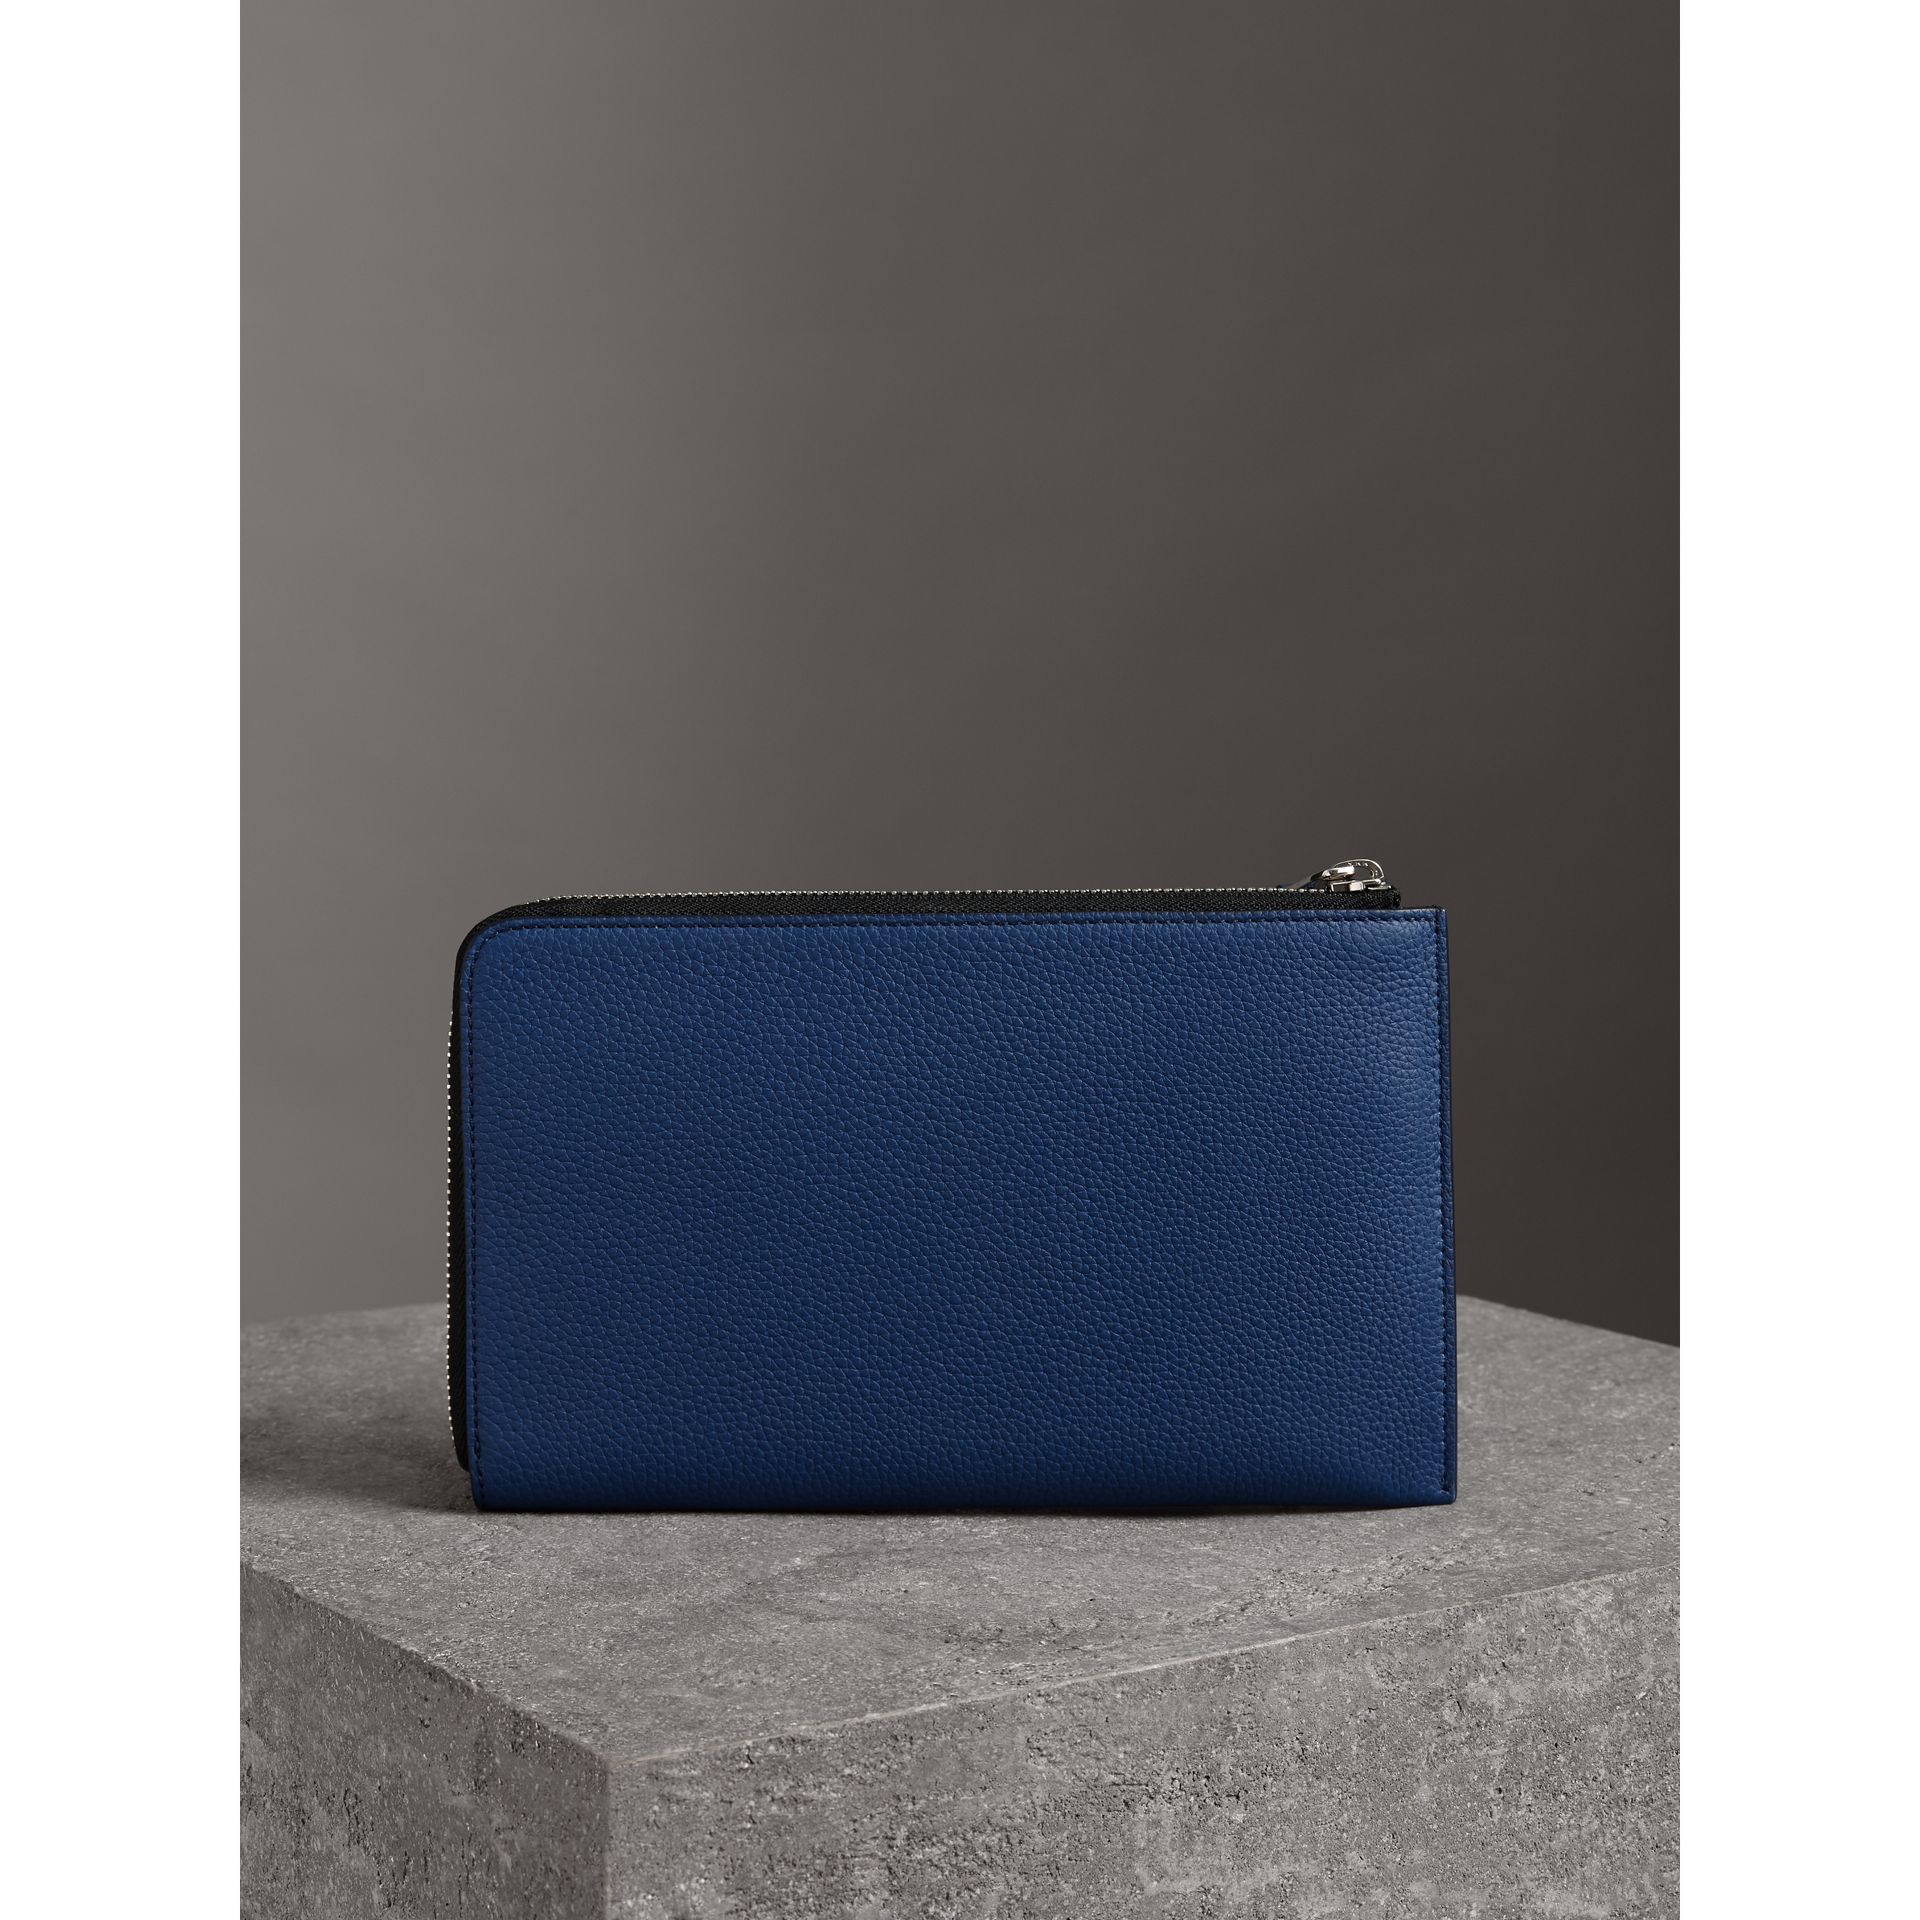 Two-tone Grainy Leather Travel Wallet in Bright Ultramarine - Men | Burberry United Kingdom - gallery image 2